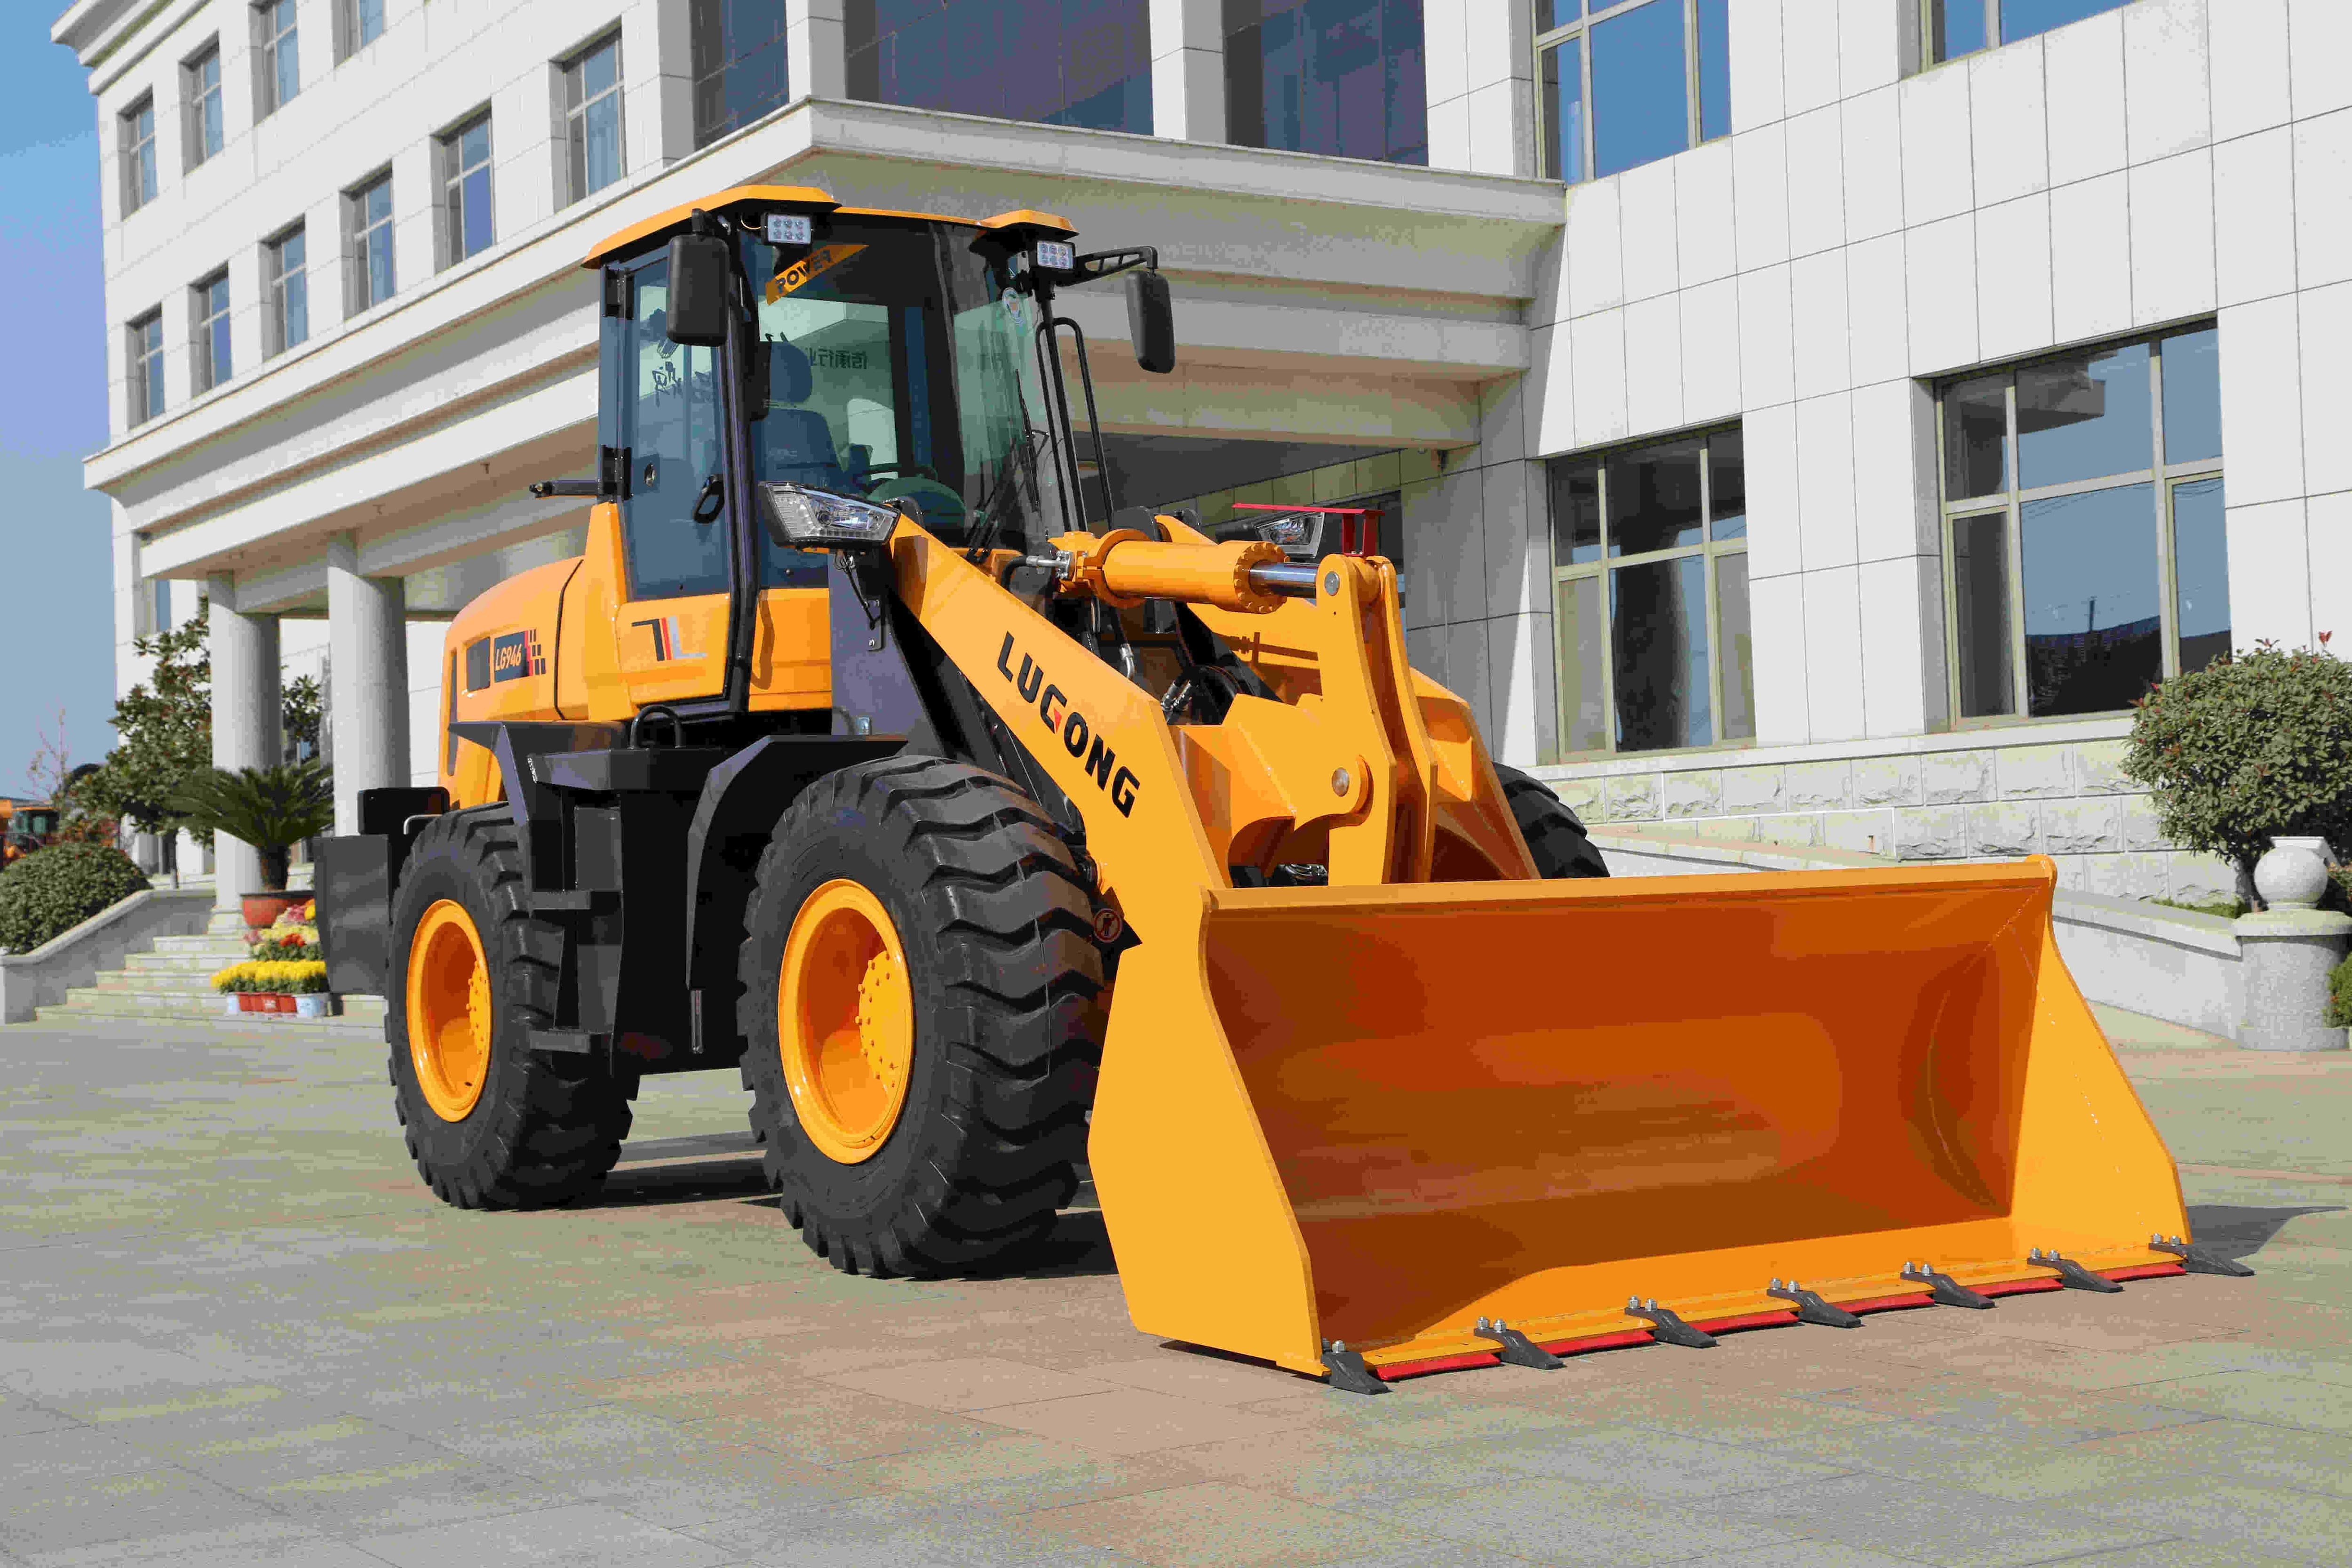 LUGONG LG946 Best-selling Compact Wheel Loader Of High Quality For Sale For Multiple Use